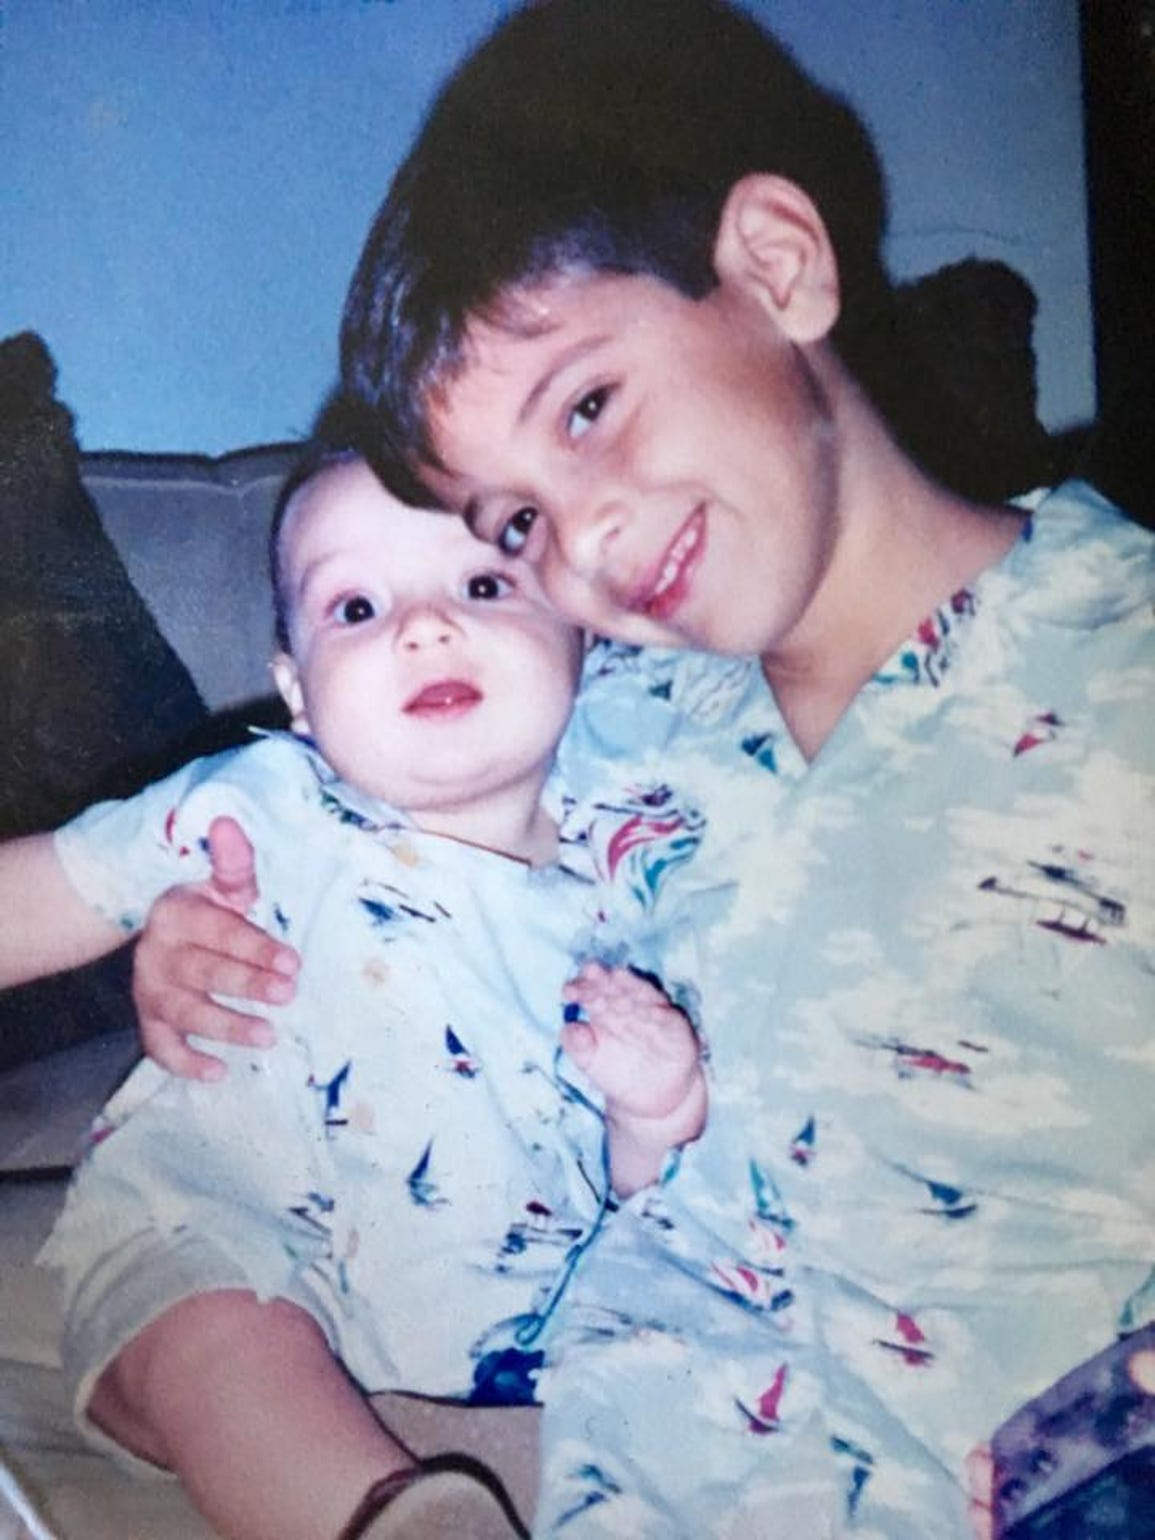 Christian and his brother Cameron as children.